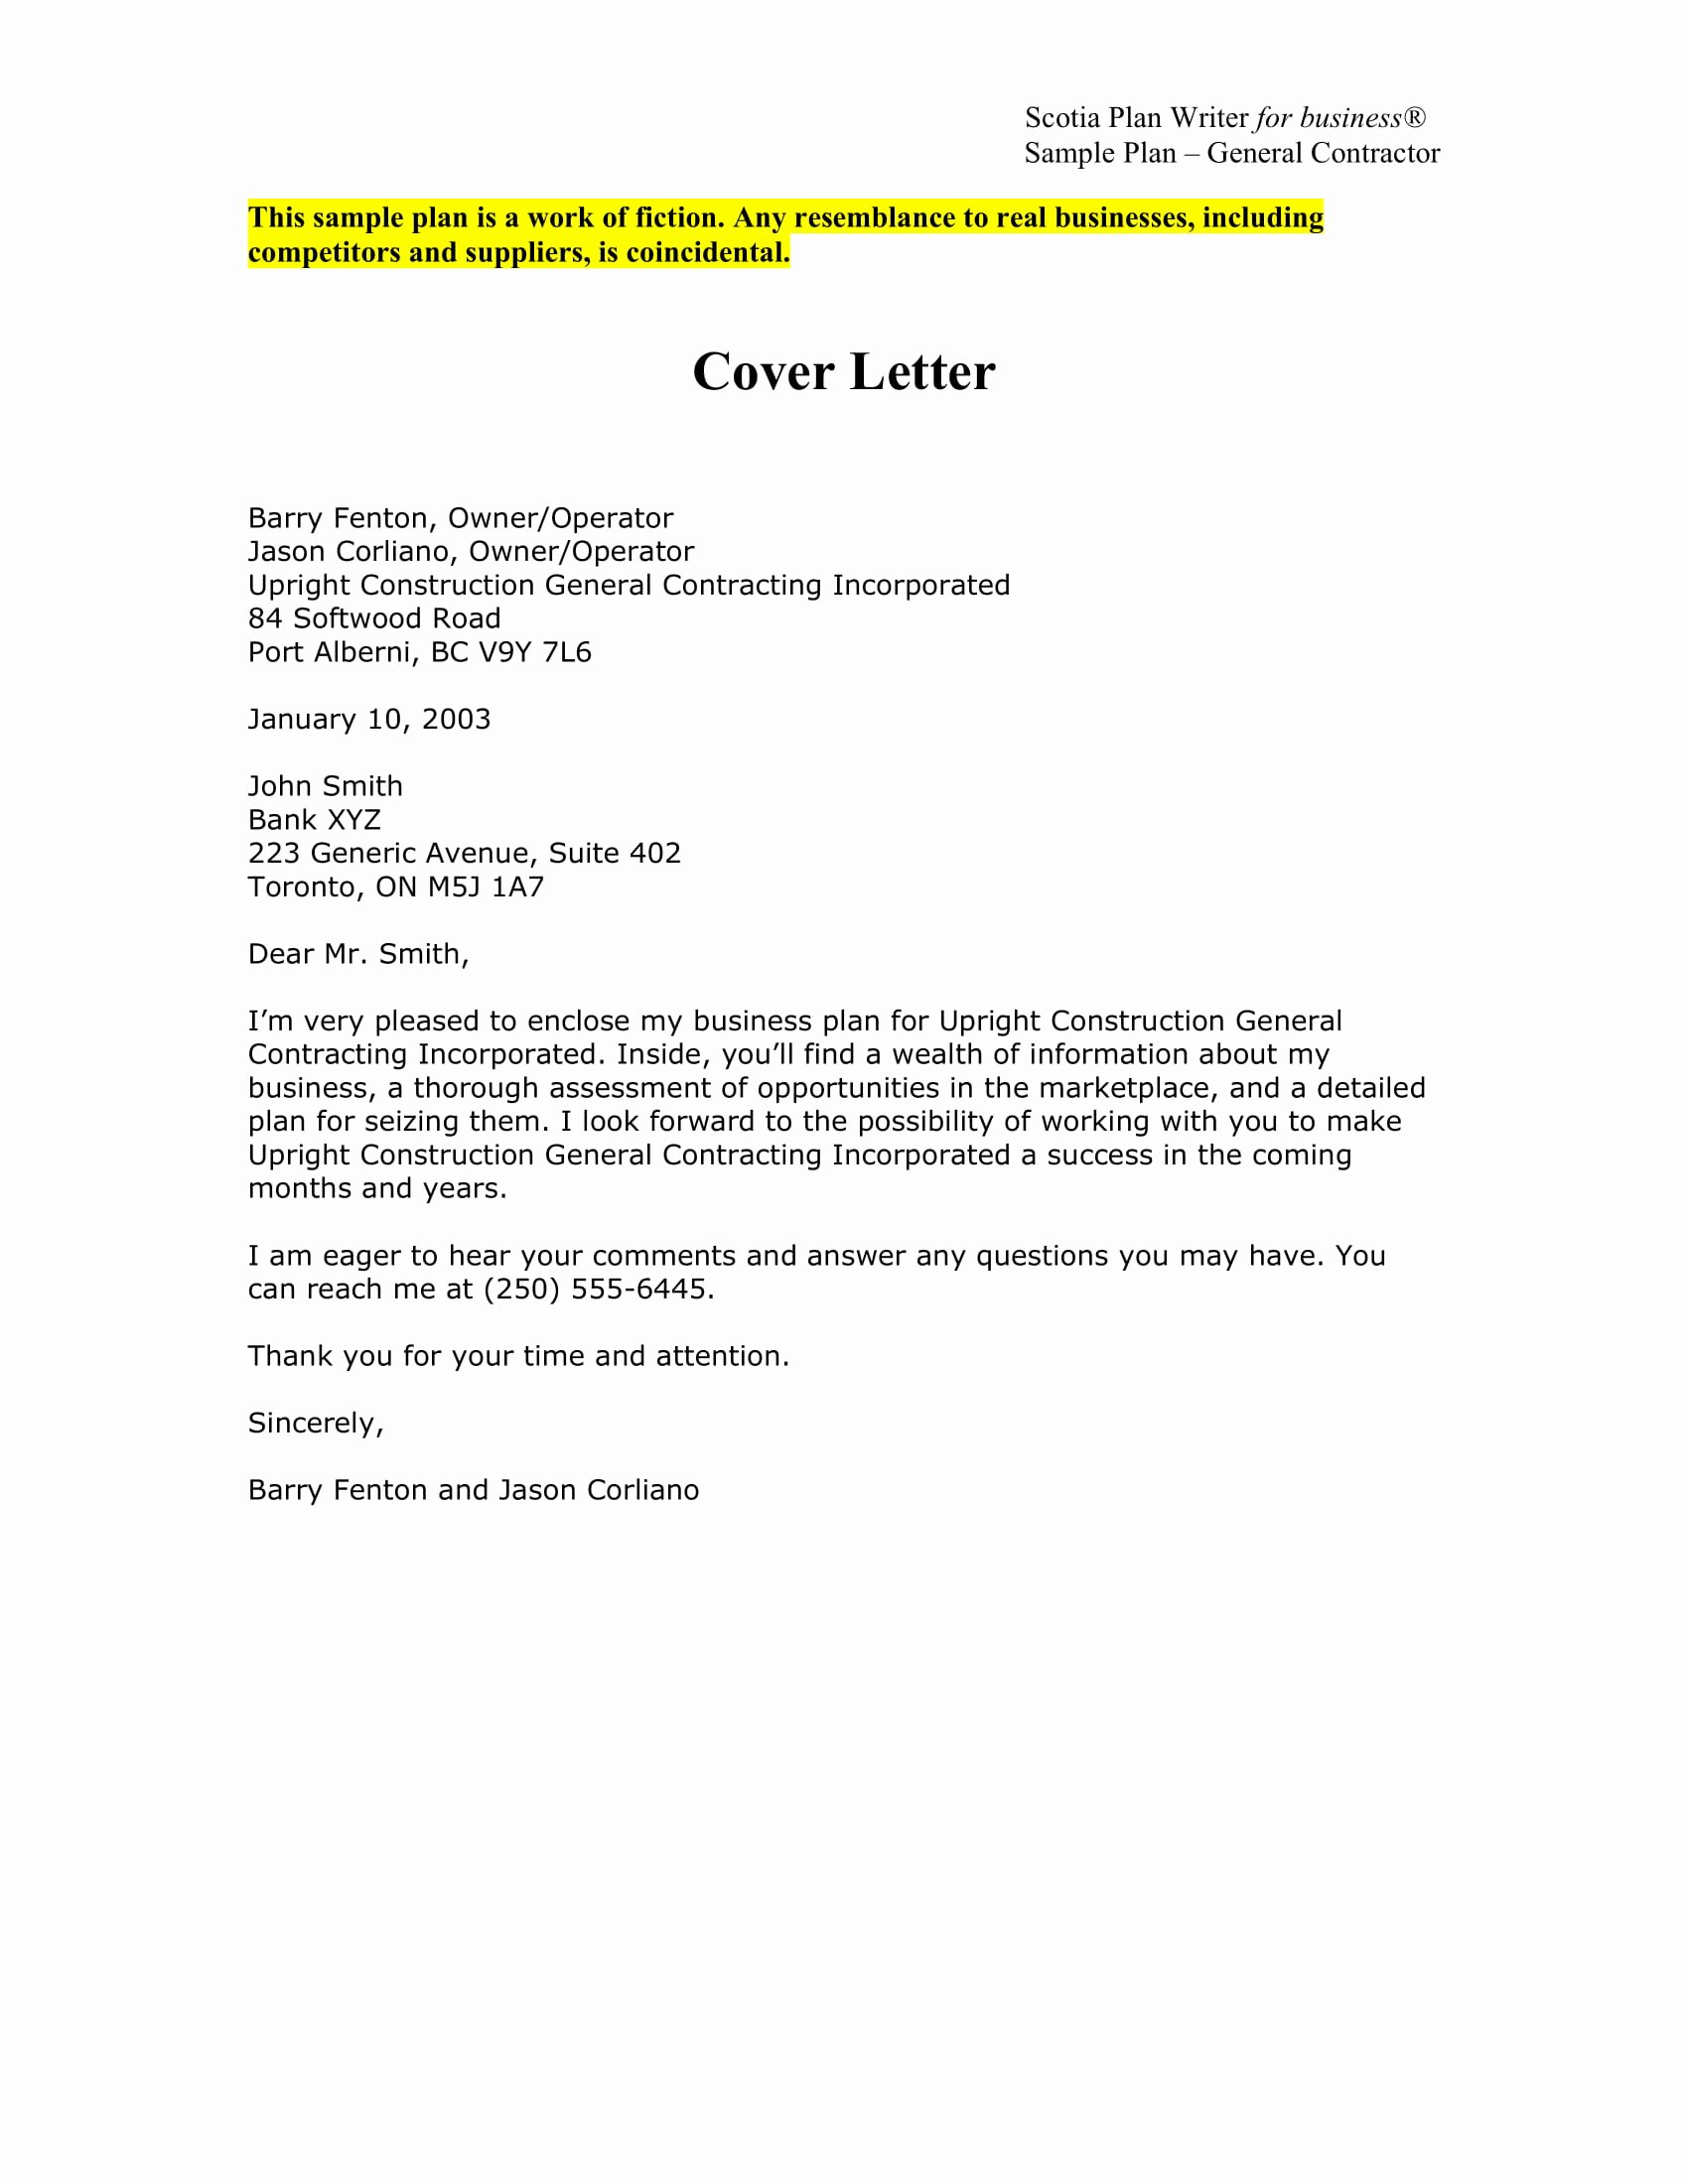 Business Collaboration Letter Sample Awesome Business Proposal Letter Examples Cover Pdf Biodata format